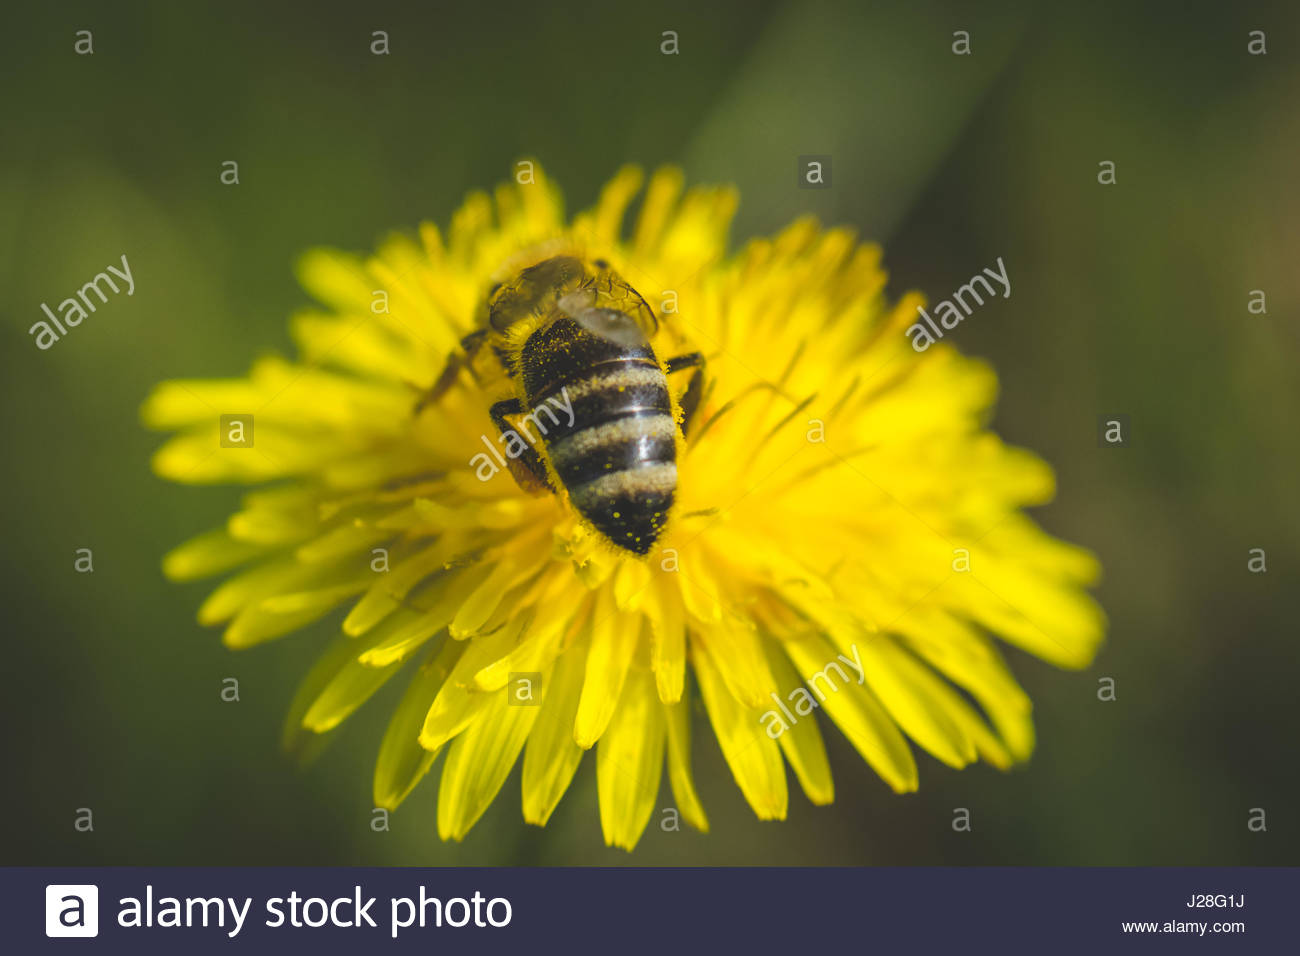 Dandelion. Spring flower. Bee loves this flower. This flower grows in parks. - Stock Image